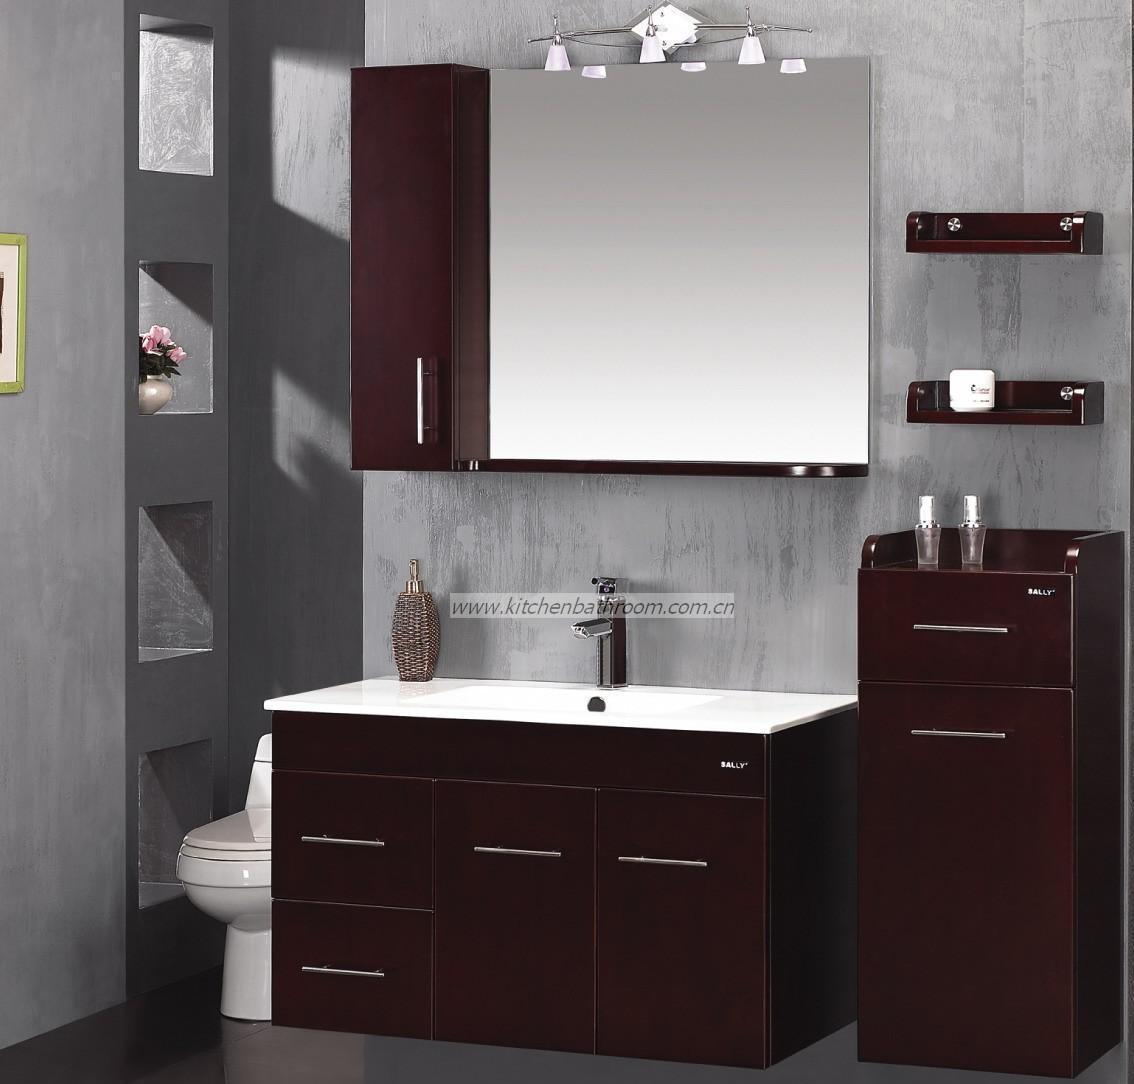 China bathroom cabinets yxbc 2022 china bathroom for Bathroom furniture cabinets